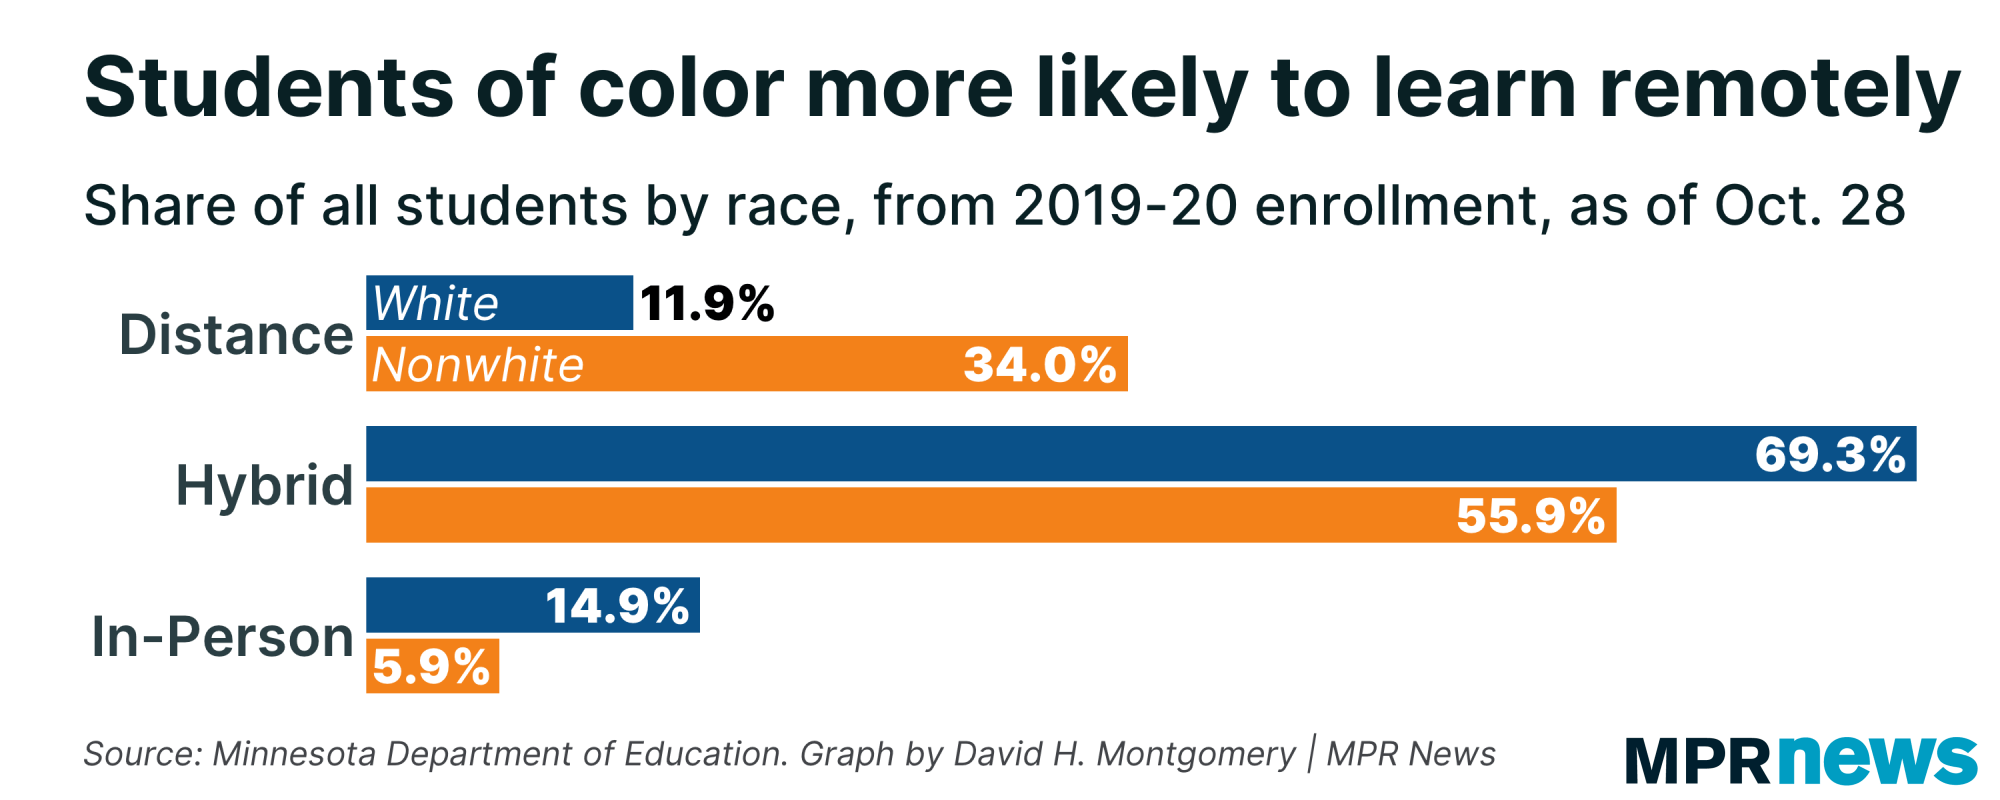 Students of color are more likely to learn remotely.